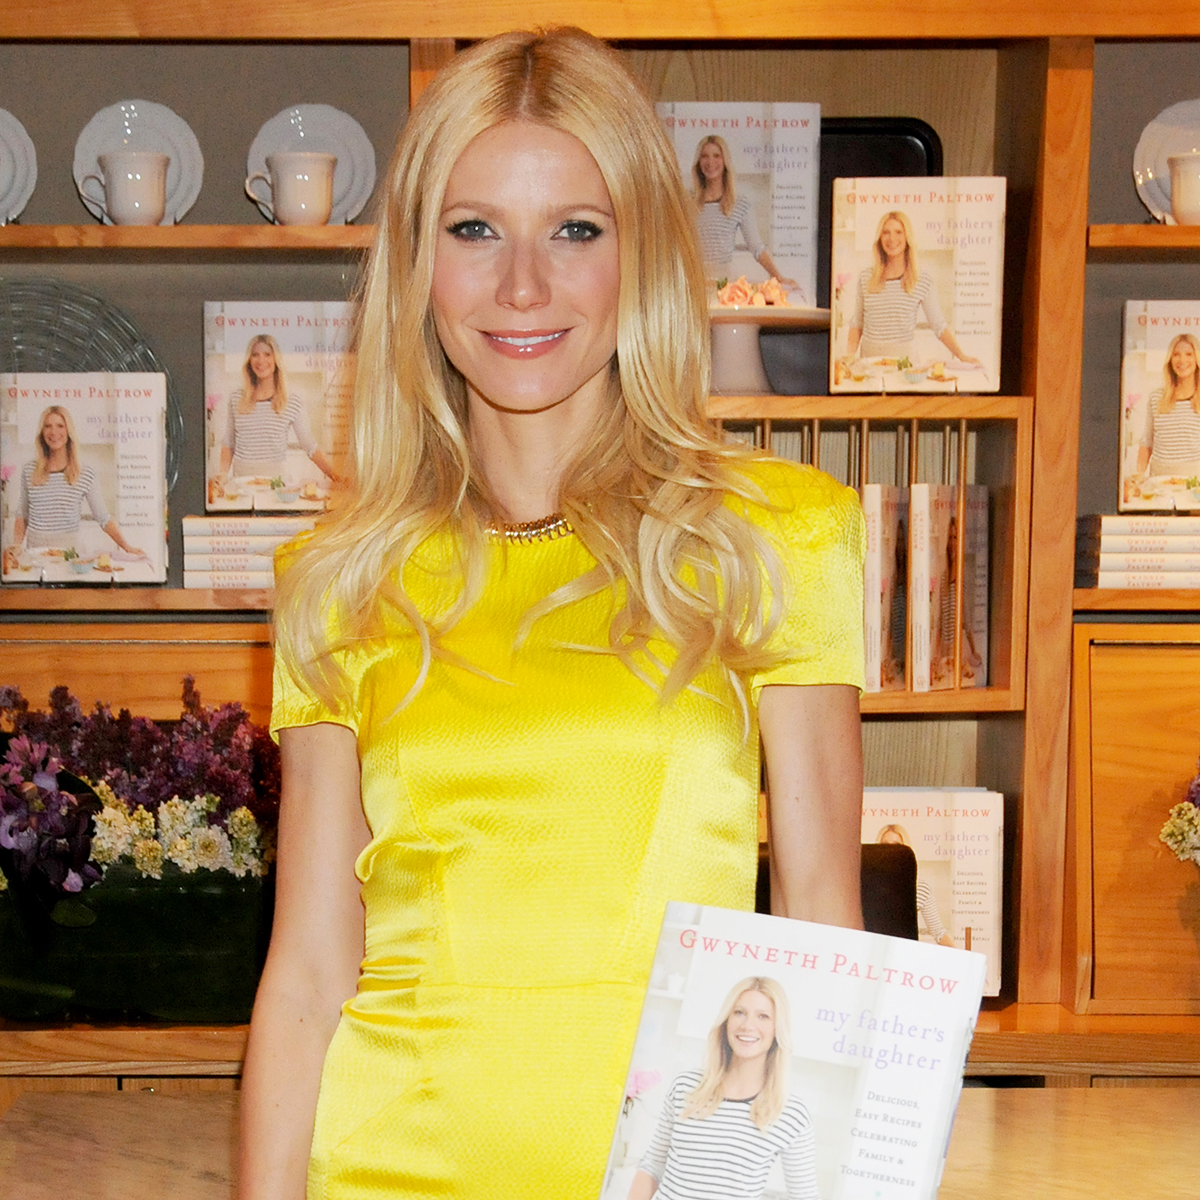 gwyneth paltrow cookbook my fathers daughter